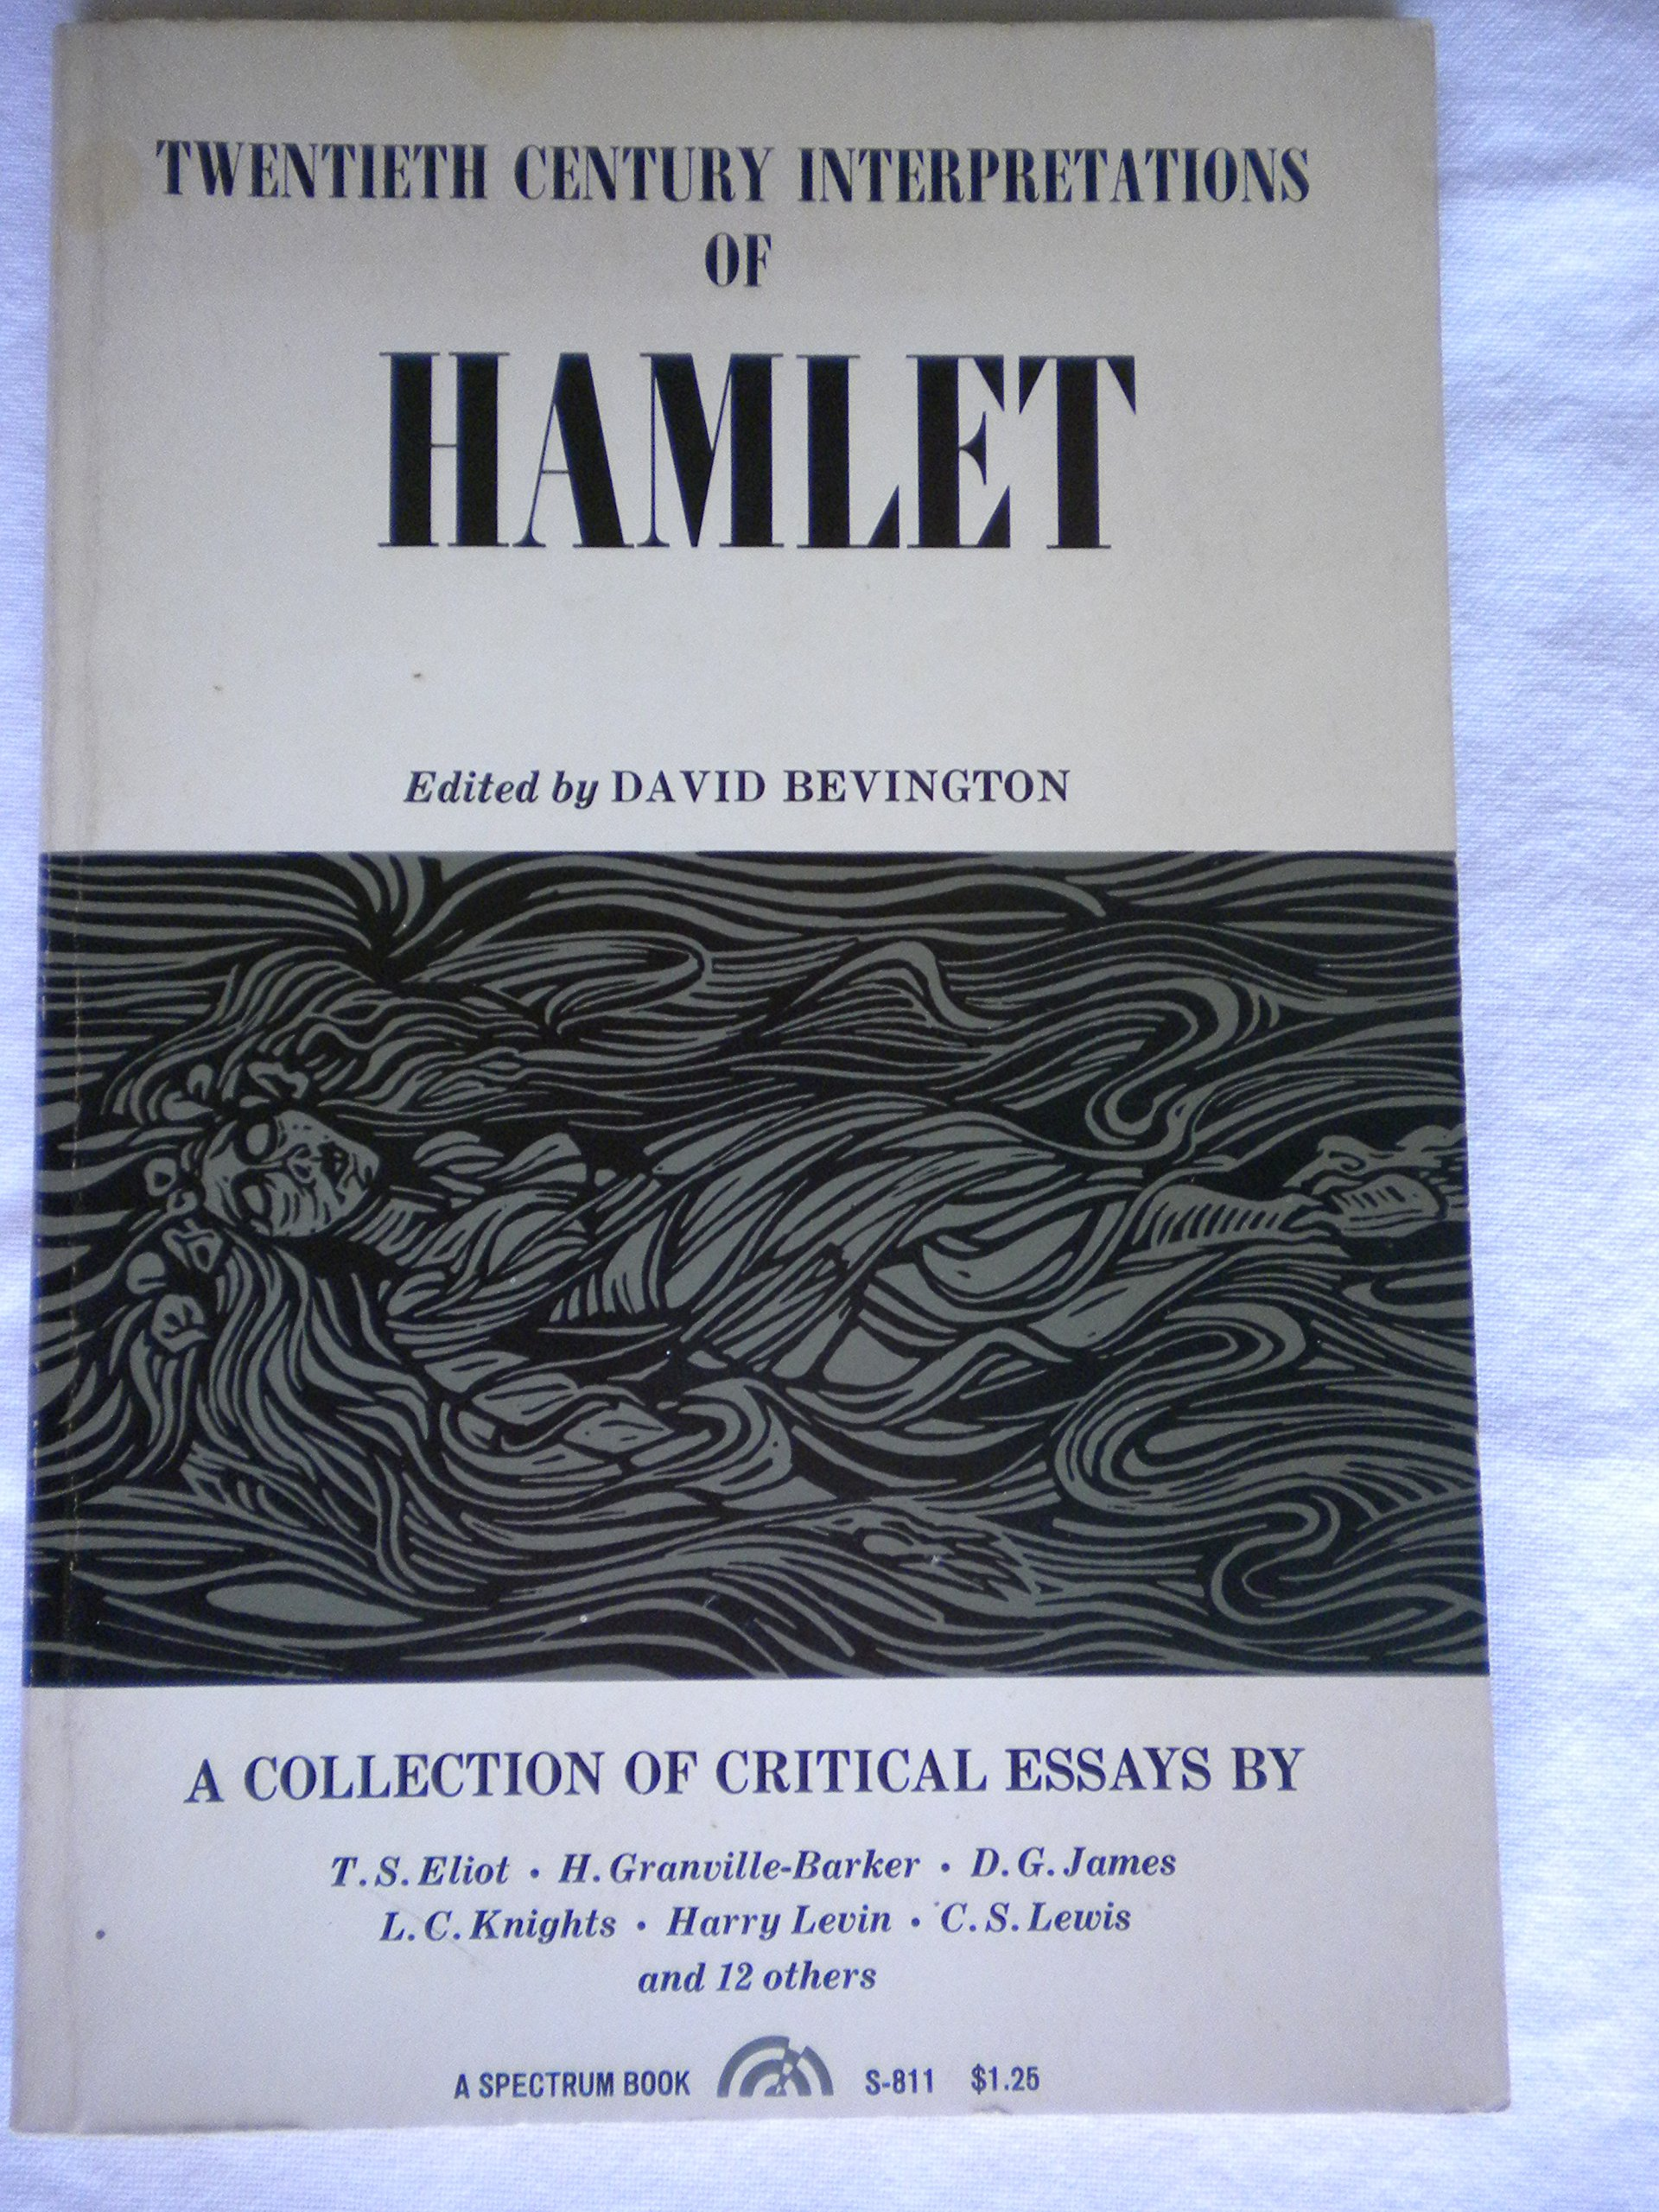 Texting While Driving Argumentative Essay Twentieth Century Interpretations Of Hamlet A Collection Of Critical Essays  David Bevington Amazoncom Books Essay On Night also Essay About Gender Equality Twentieth Century Interpretations Of Hamlet A Collection Of  Essay On Stopping By Woods On A Snowy Evening